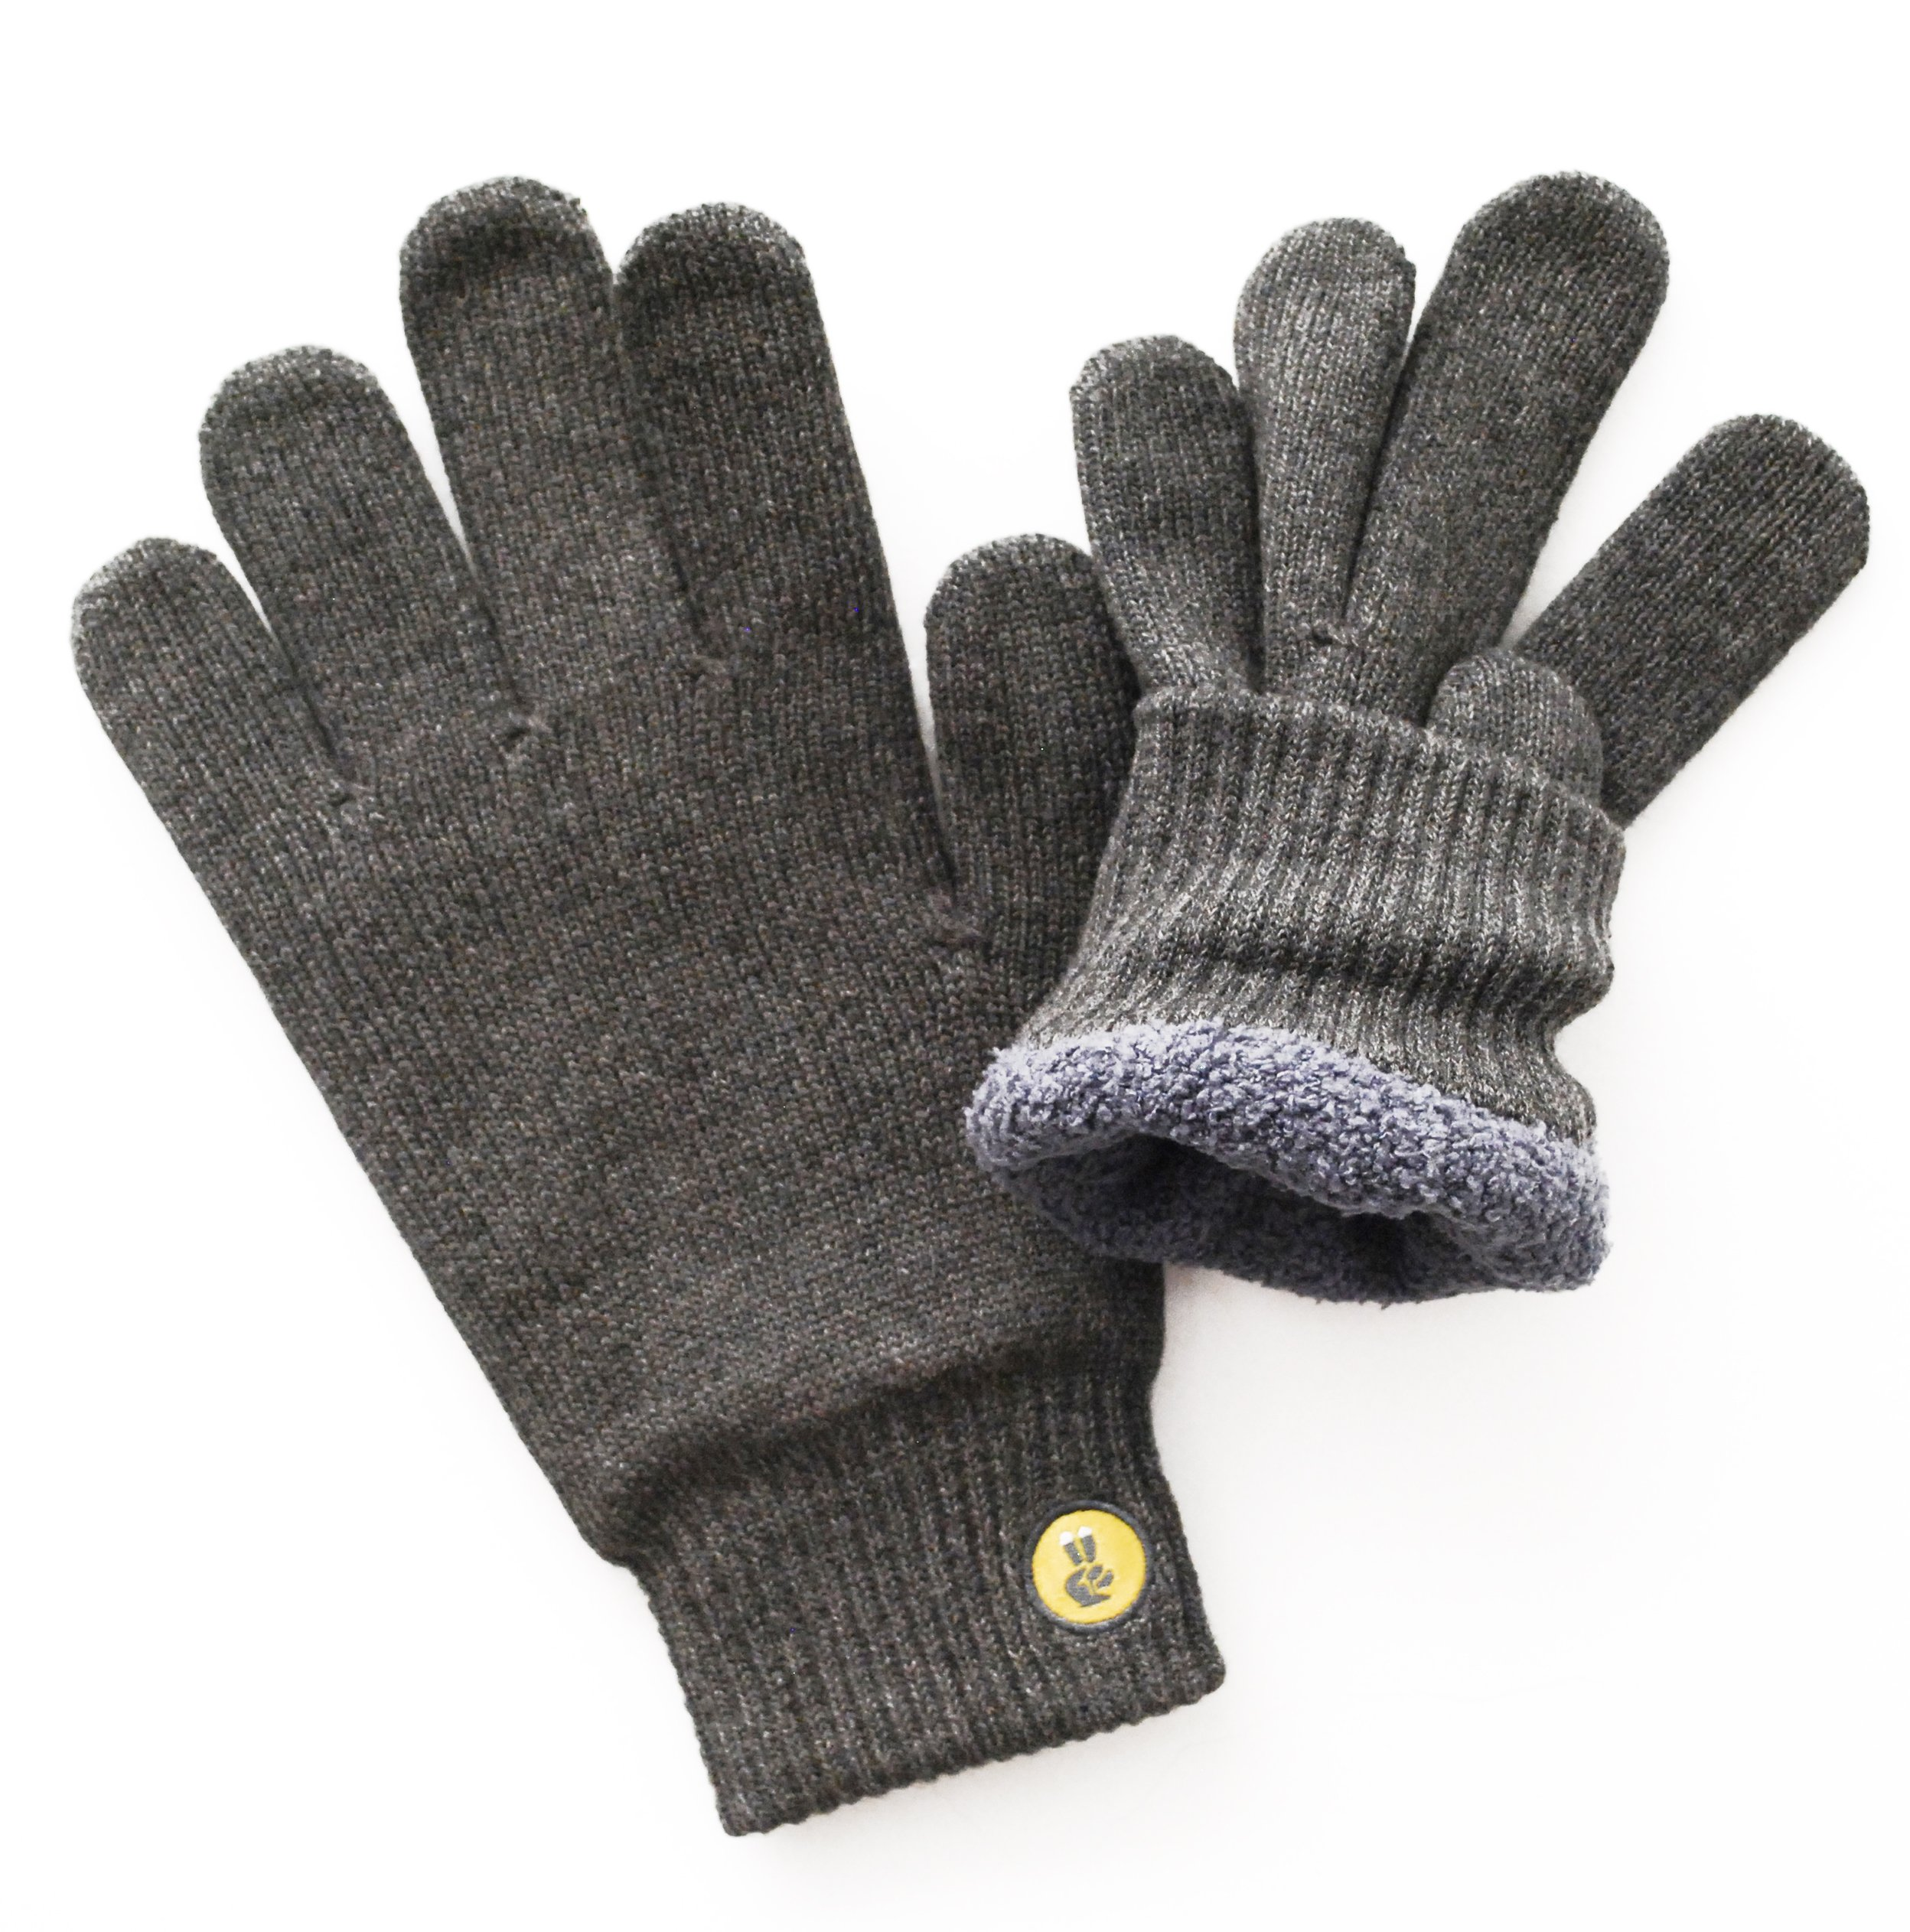 Glove.ly Adult COZY Lined Winter Touch Screen Gloves -Extra Small-Charcoal